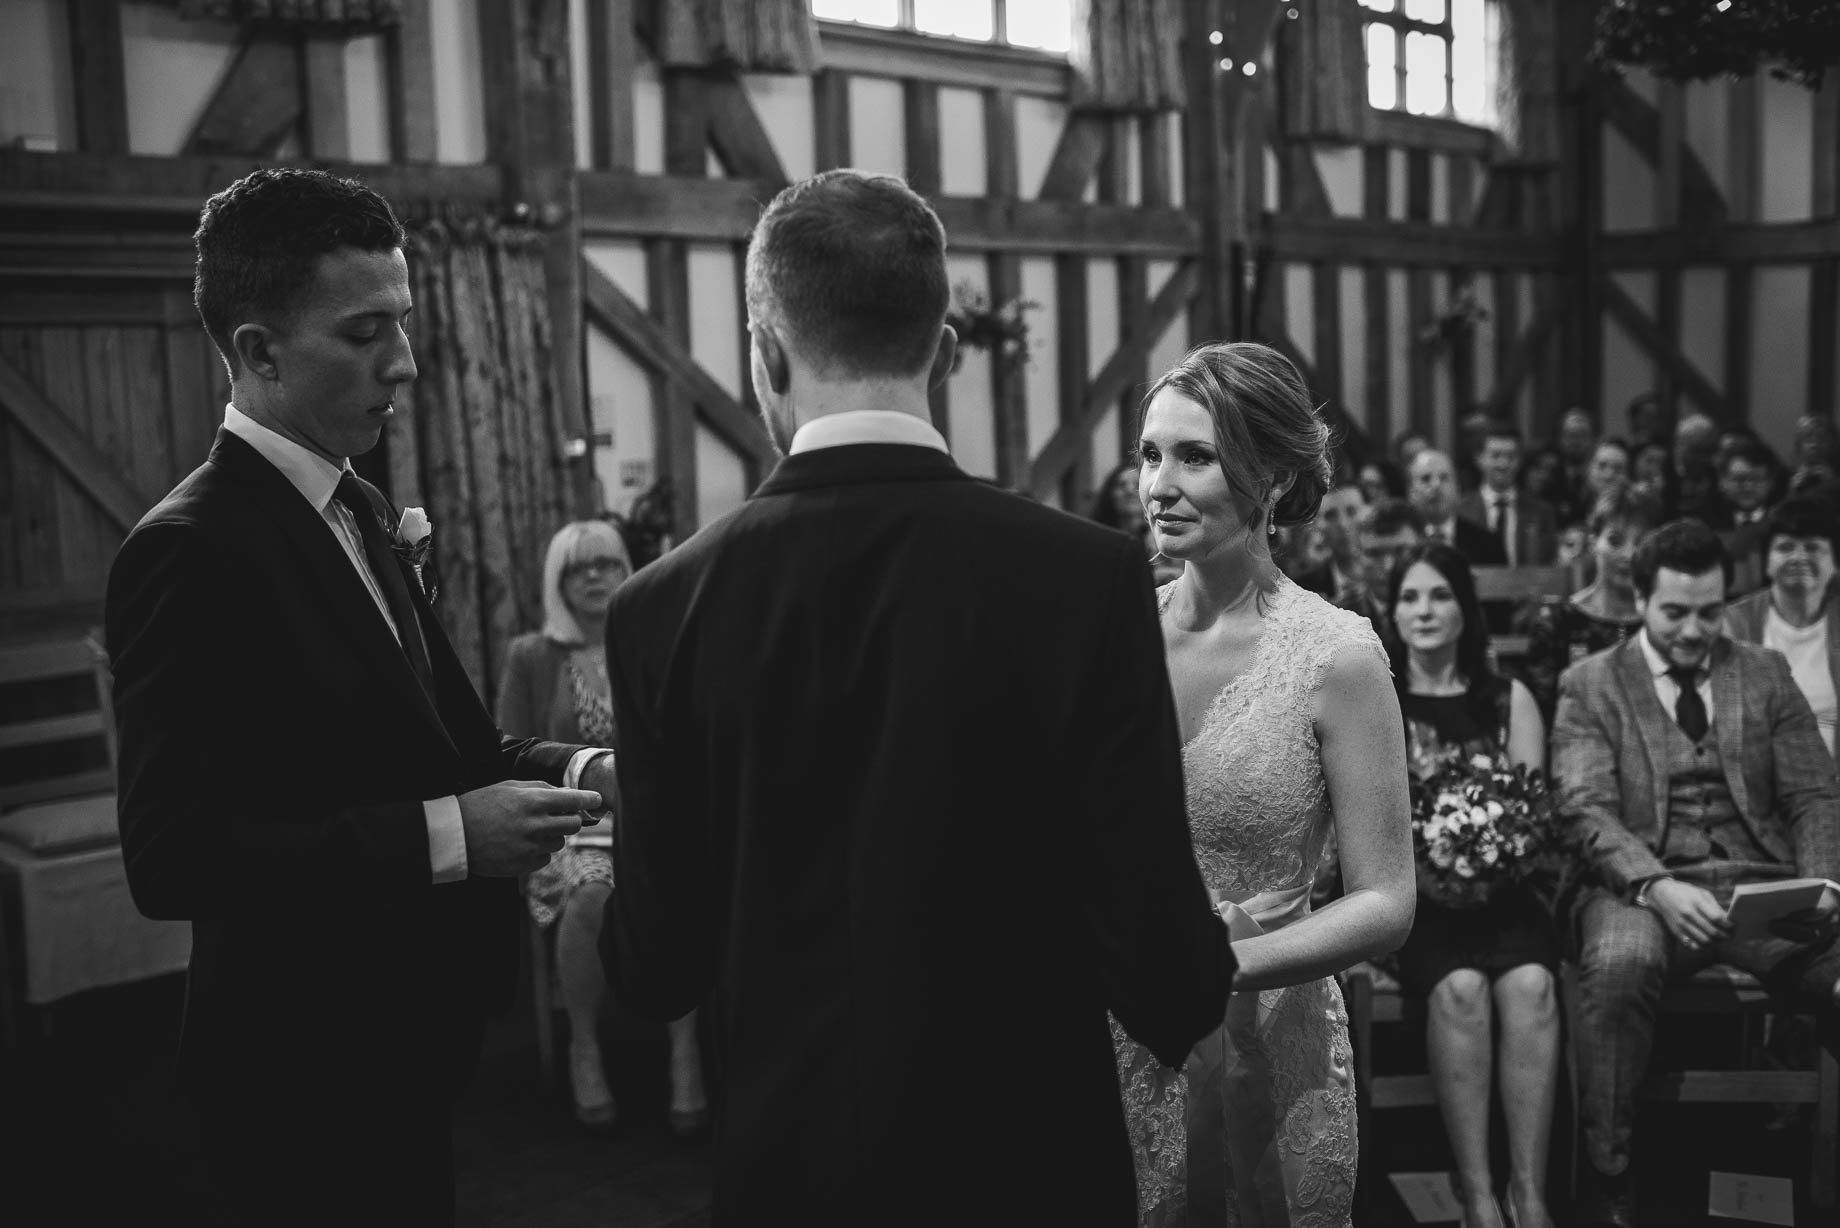 Surrey Wedding Photography by Guy Collier - Becca and James (42 of 145)